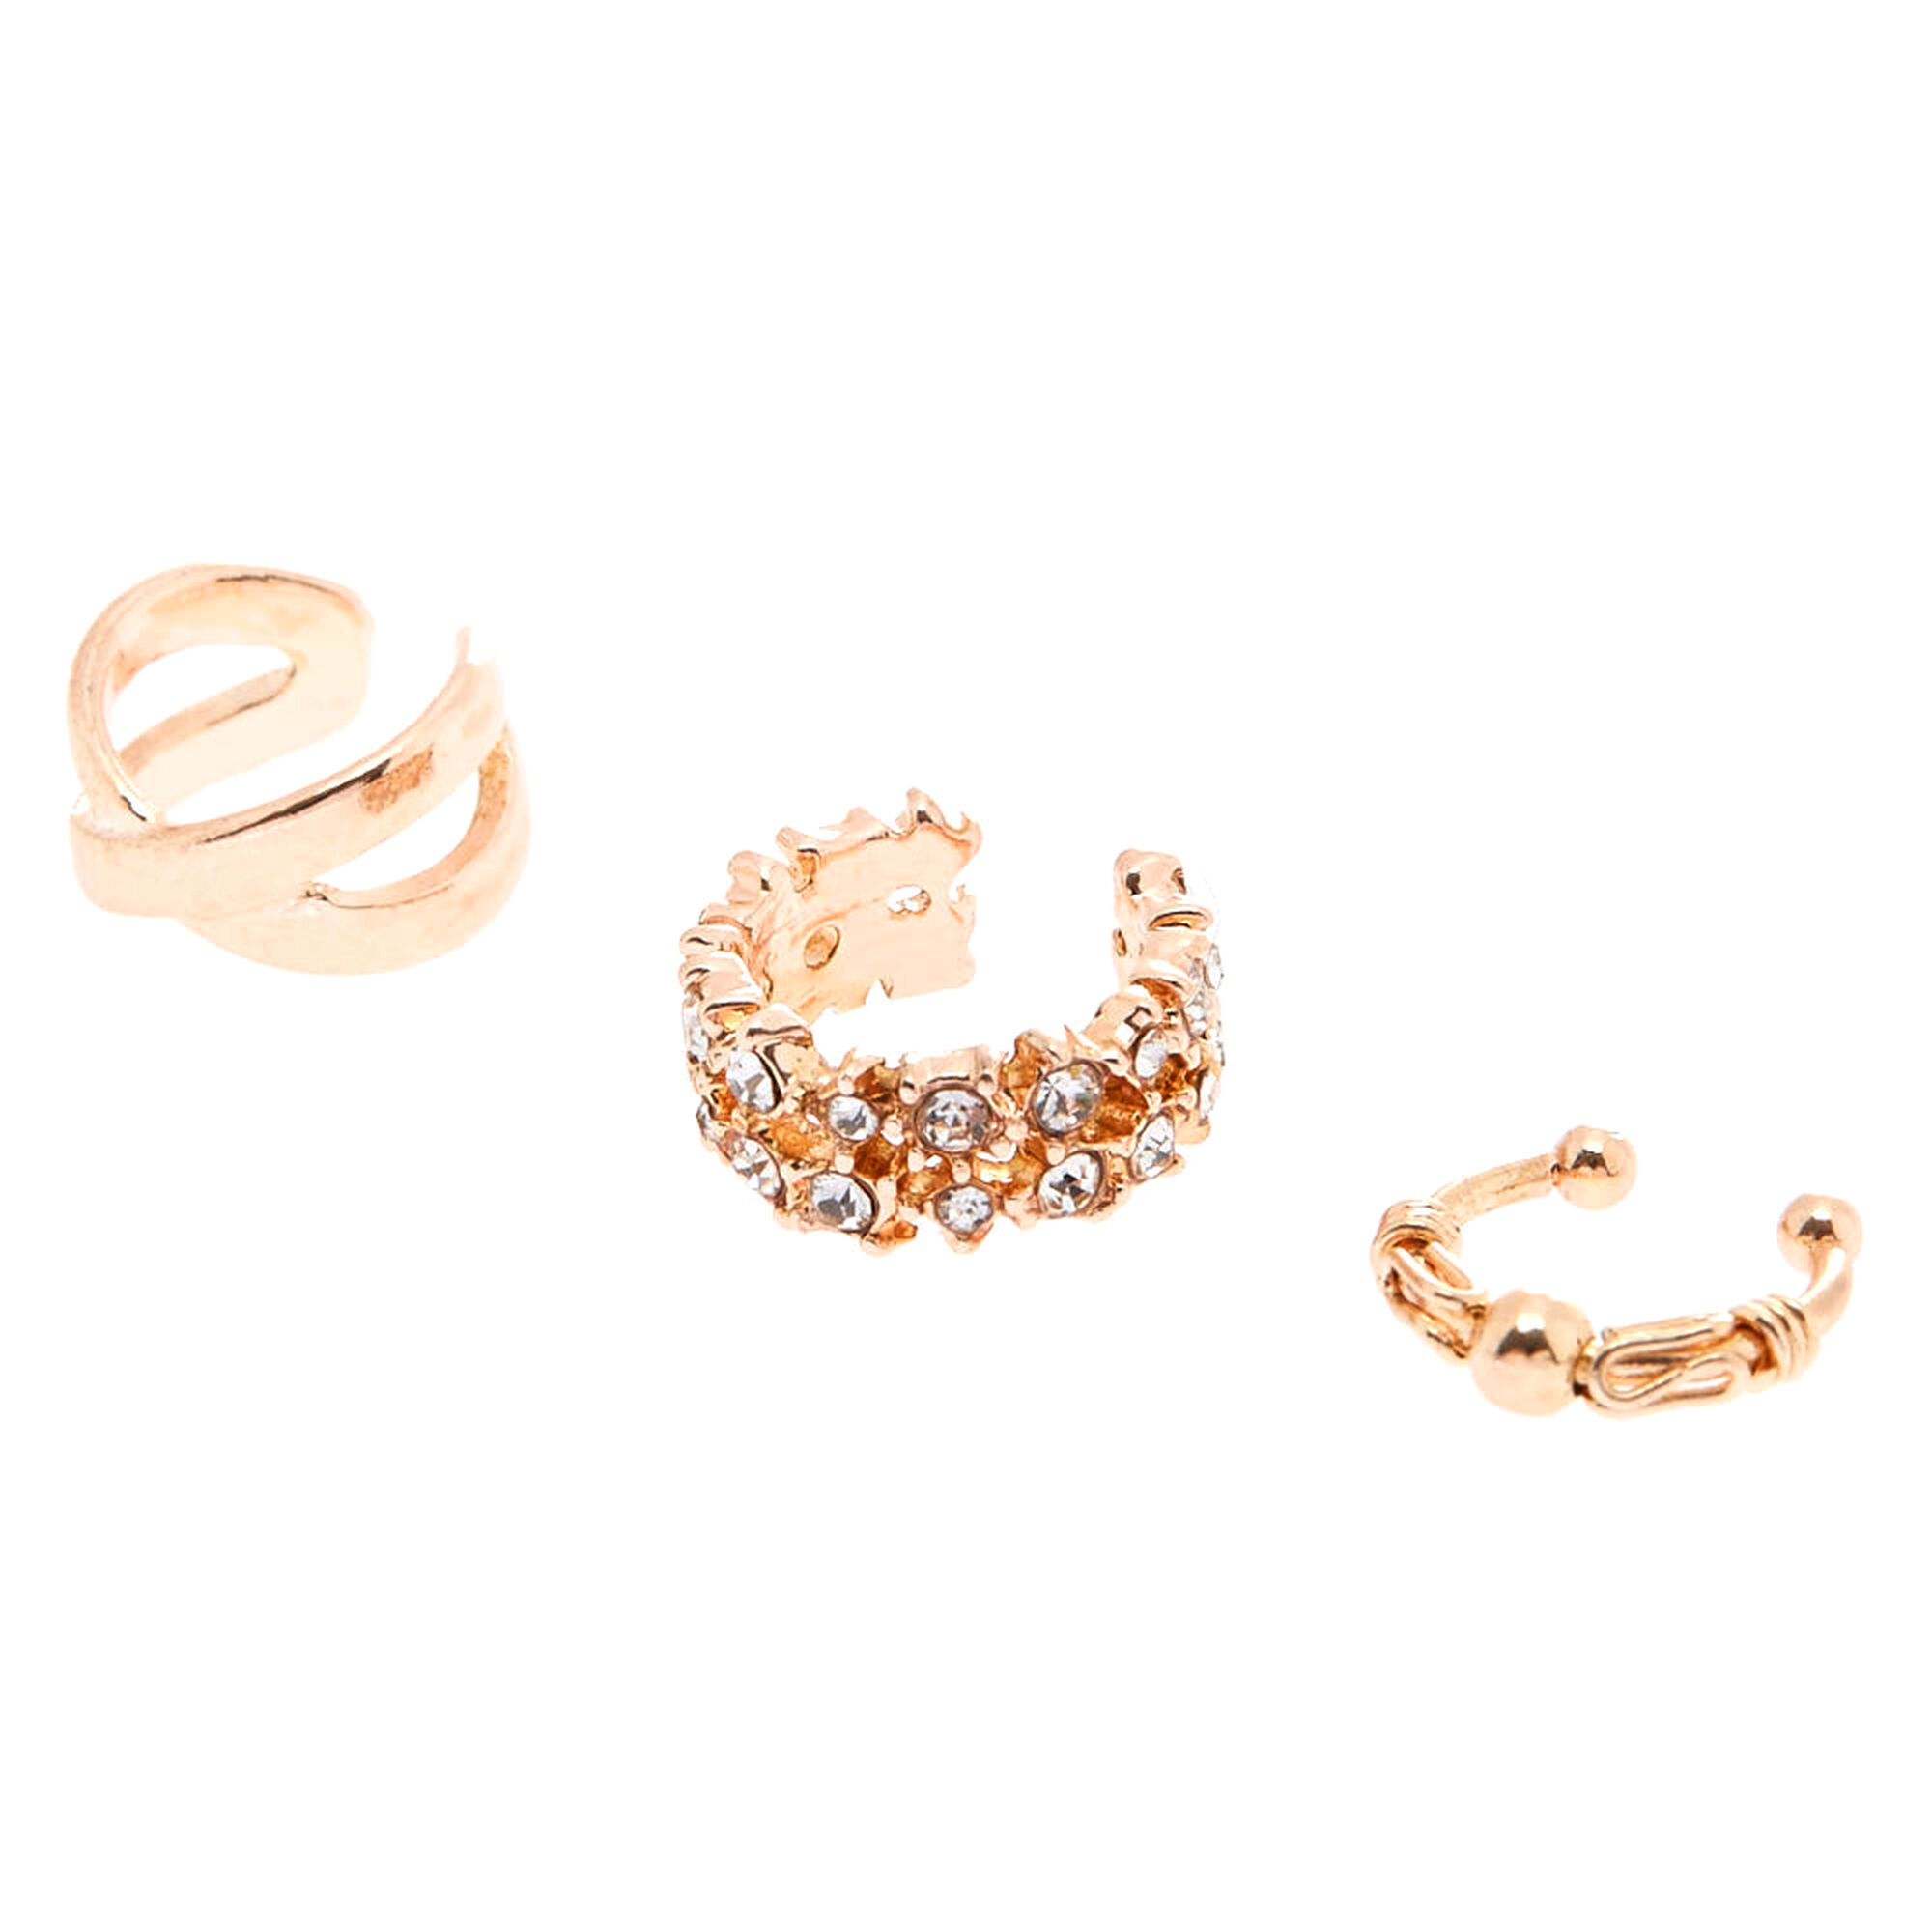 ea77a14fa Rose Gold Ear Cuffs - 3 Pack | Icing US